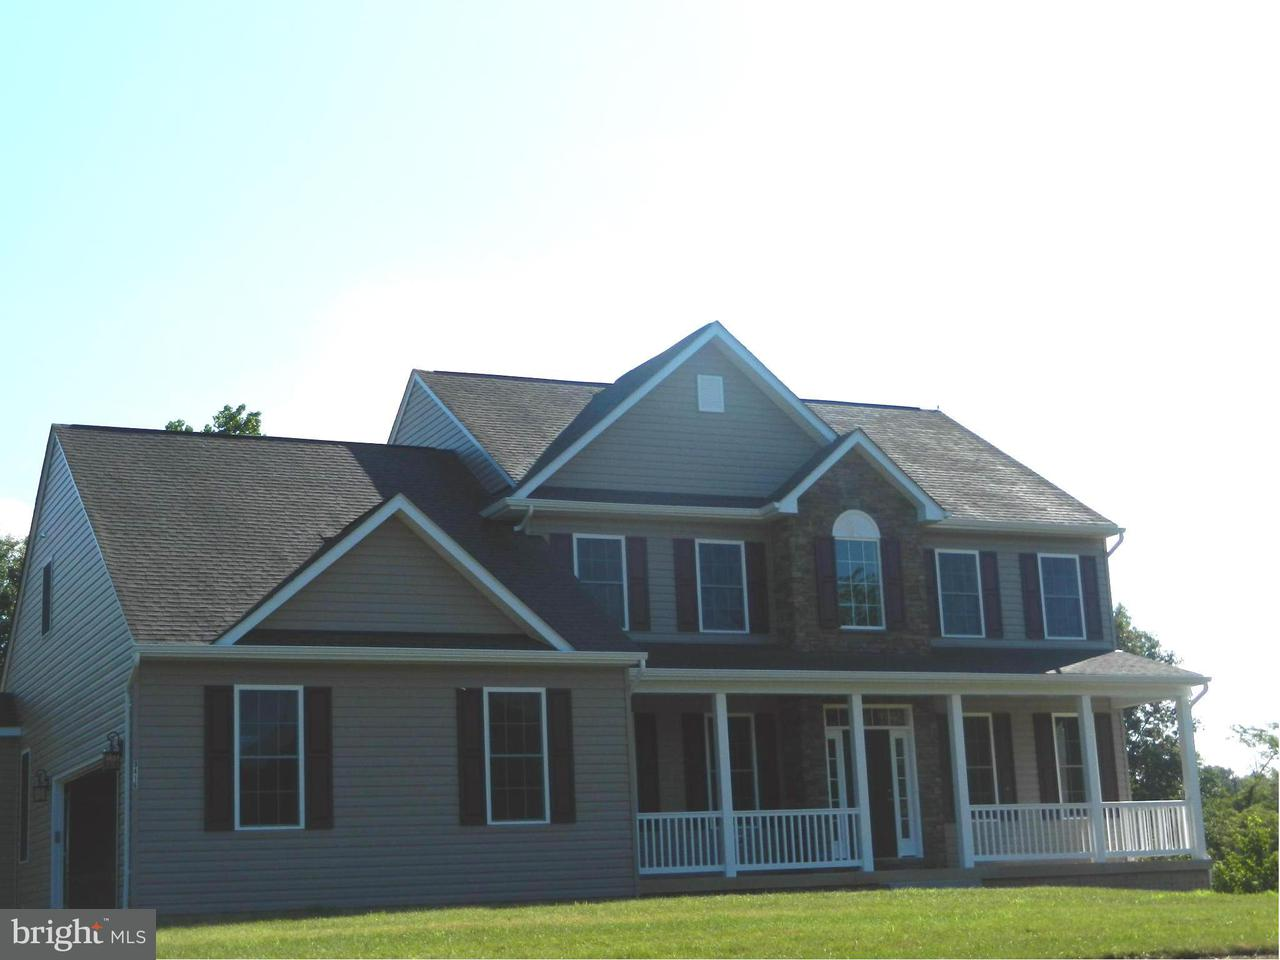 Single Family Home for Sale at 12371 BELLE Place 12371 BELLE Place Hughesville, Maryland 20637 United States